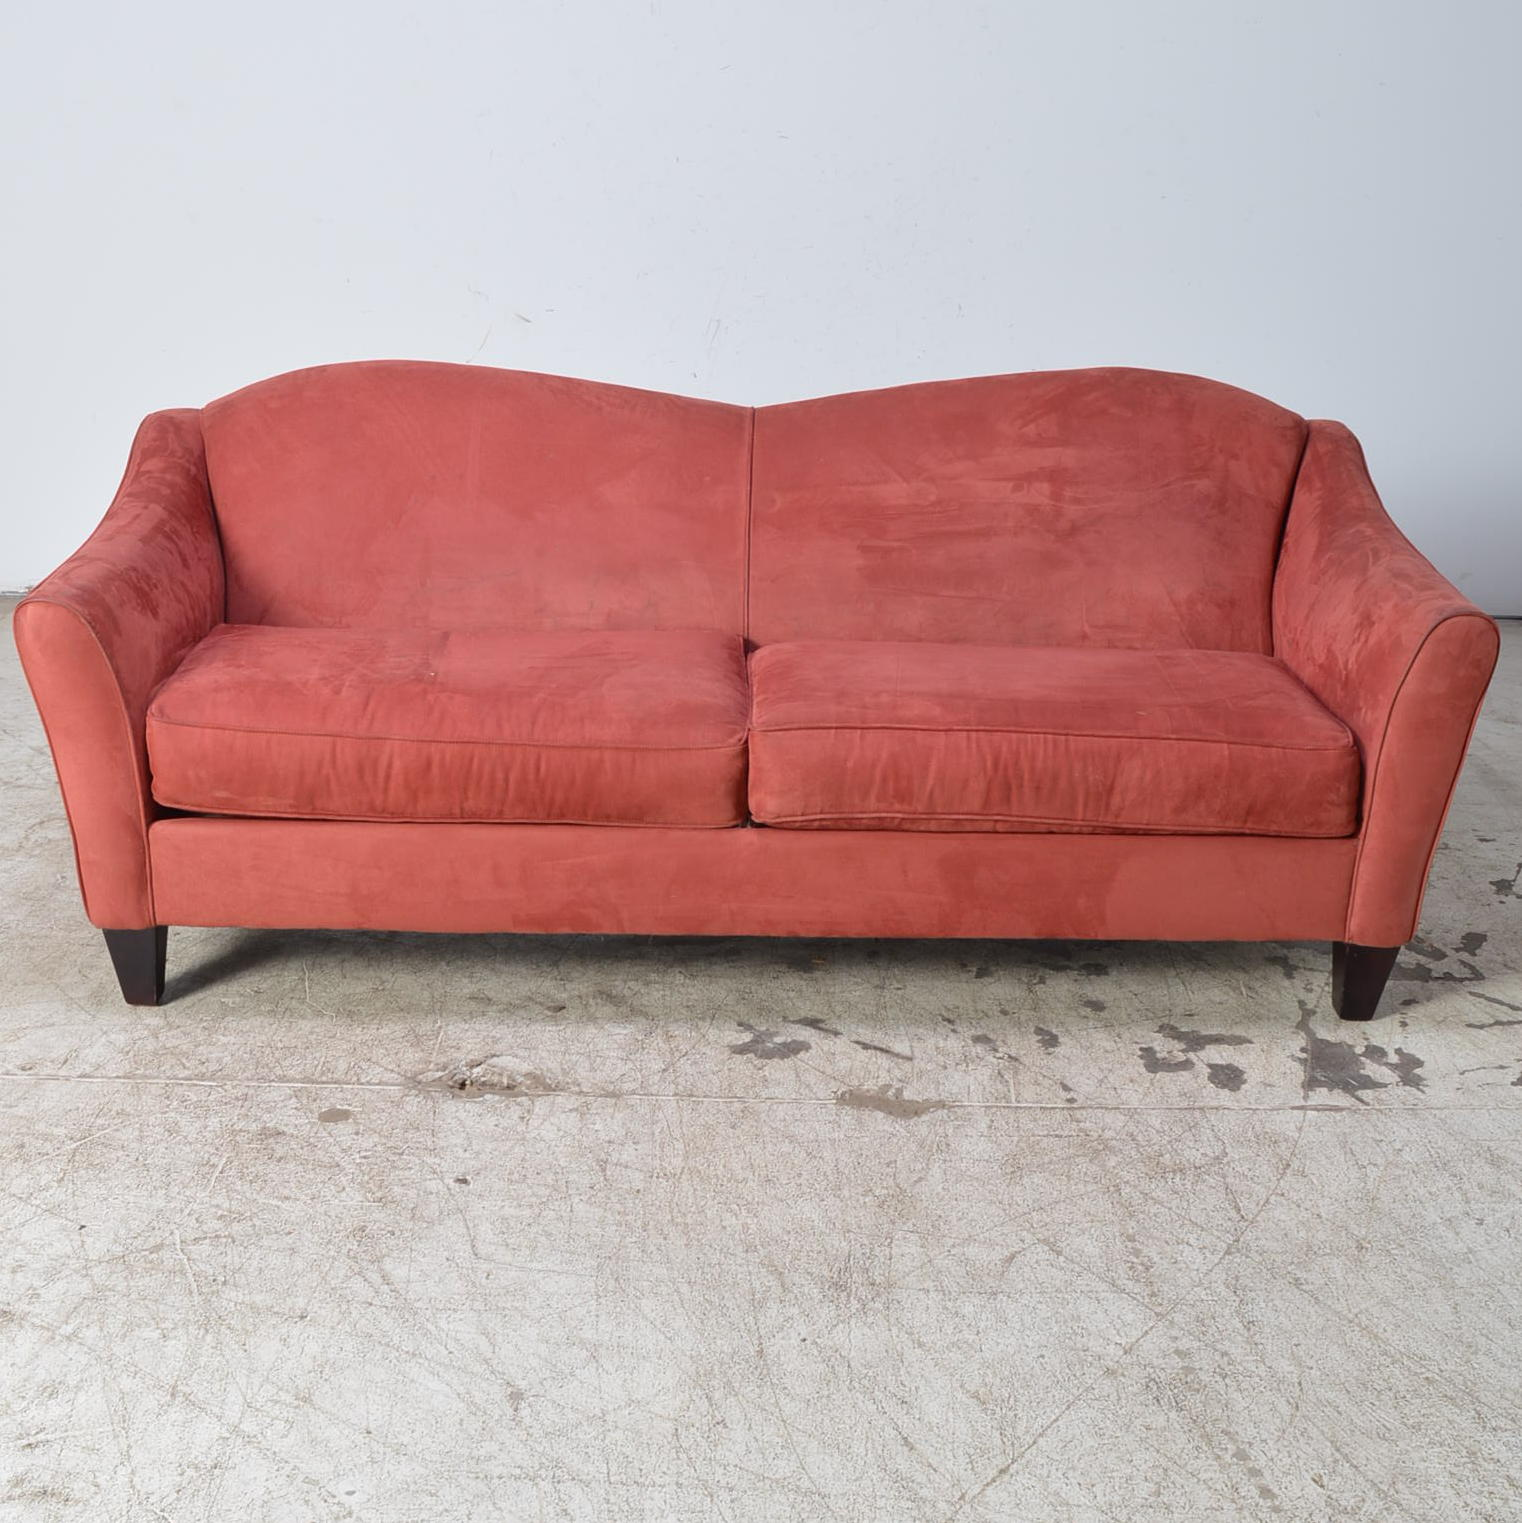 Contemporary Red Microfiber Camelback Sofa By Bauhaus Furniture